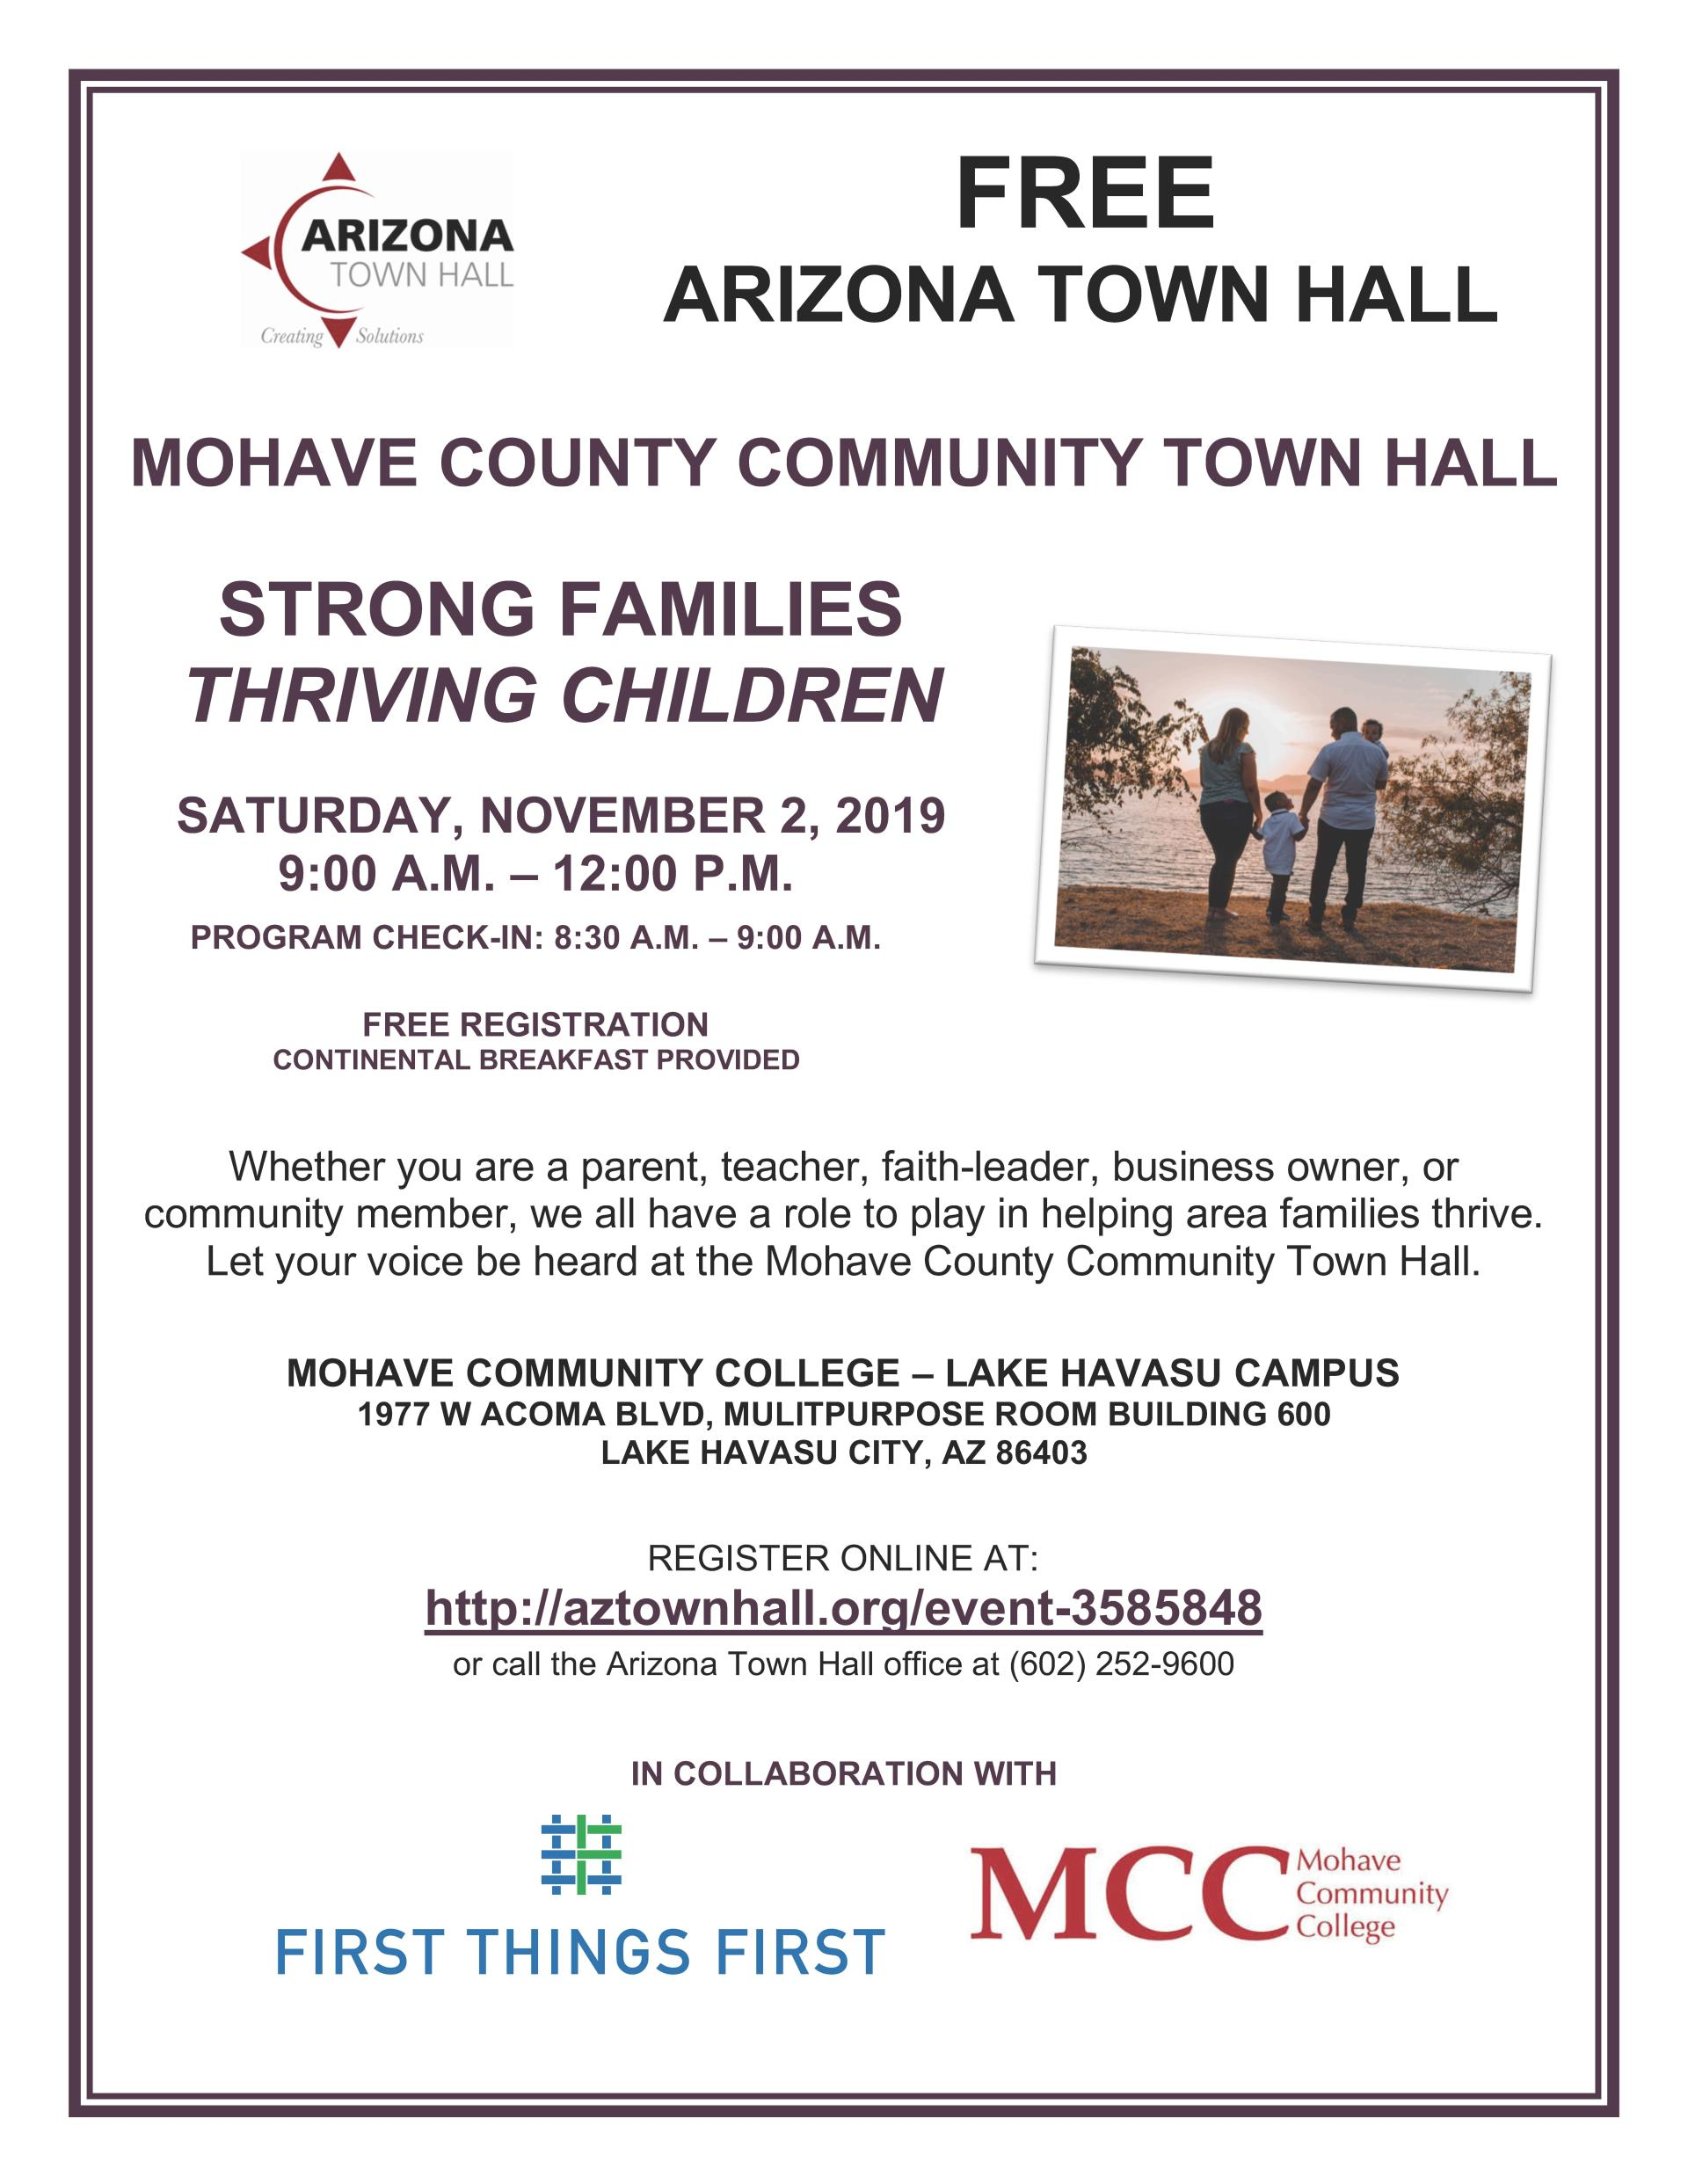 Mohave County Community Town Hall flyer-min